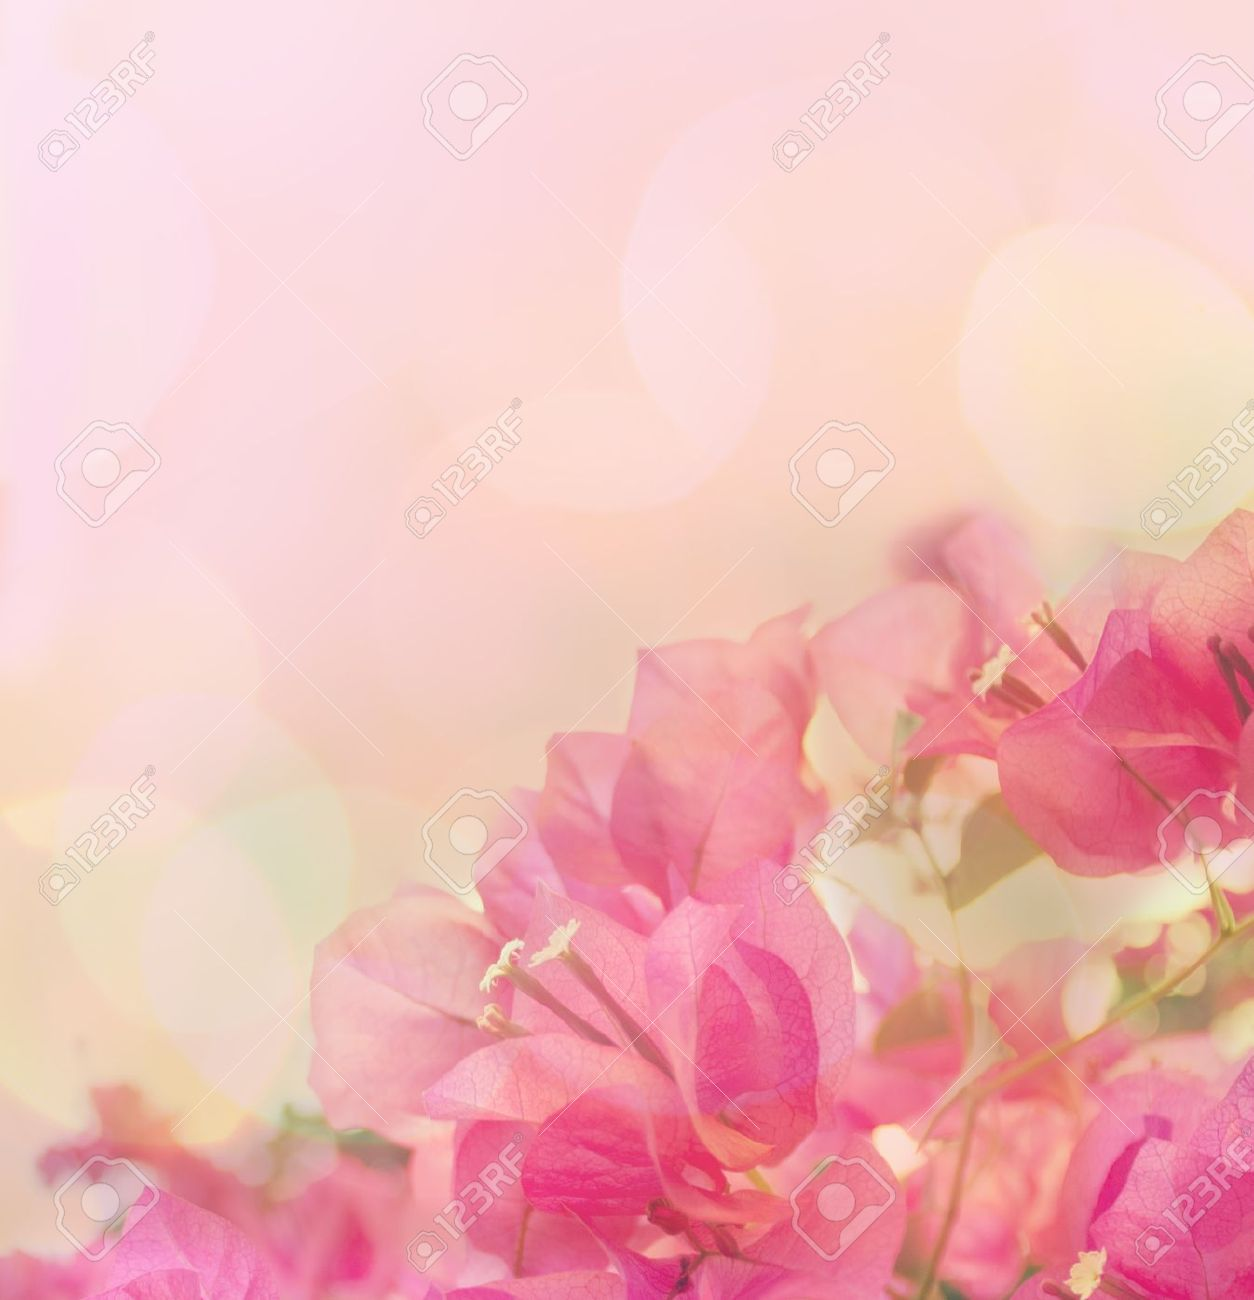 Beautiful Abstract Floral Background With Pink Flowers Border